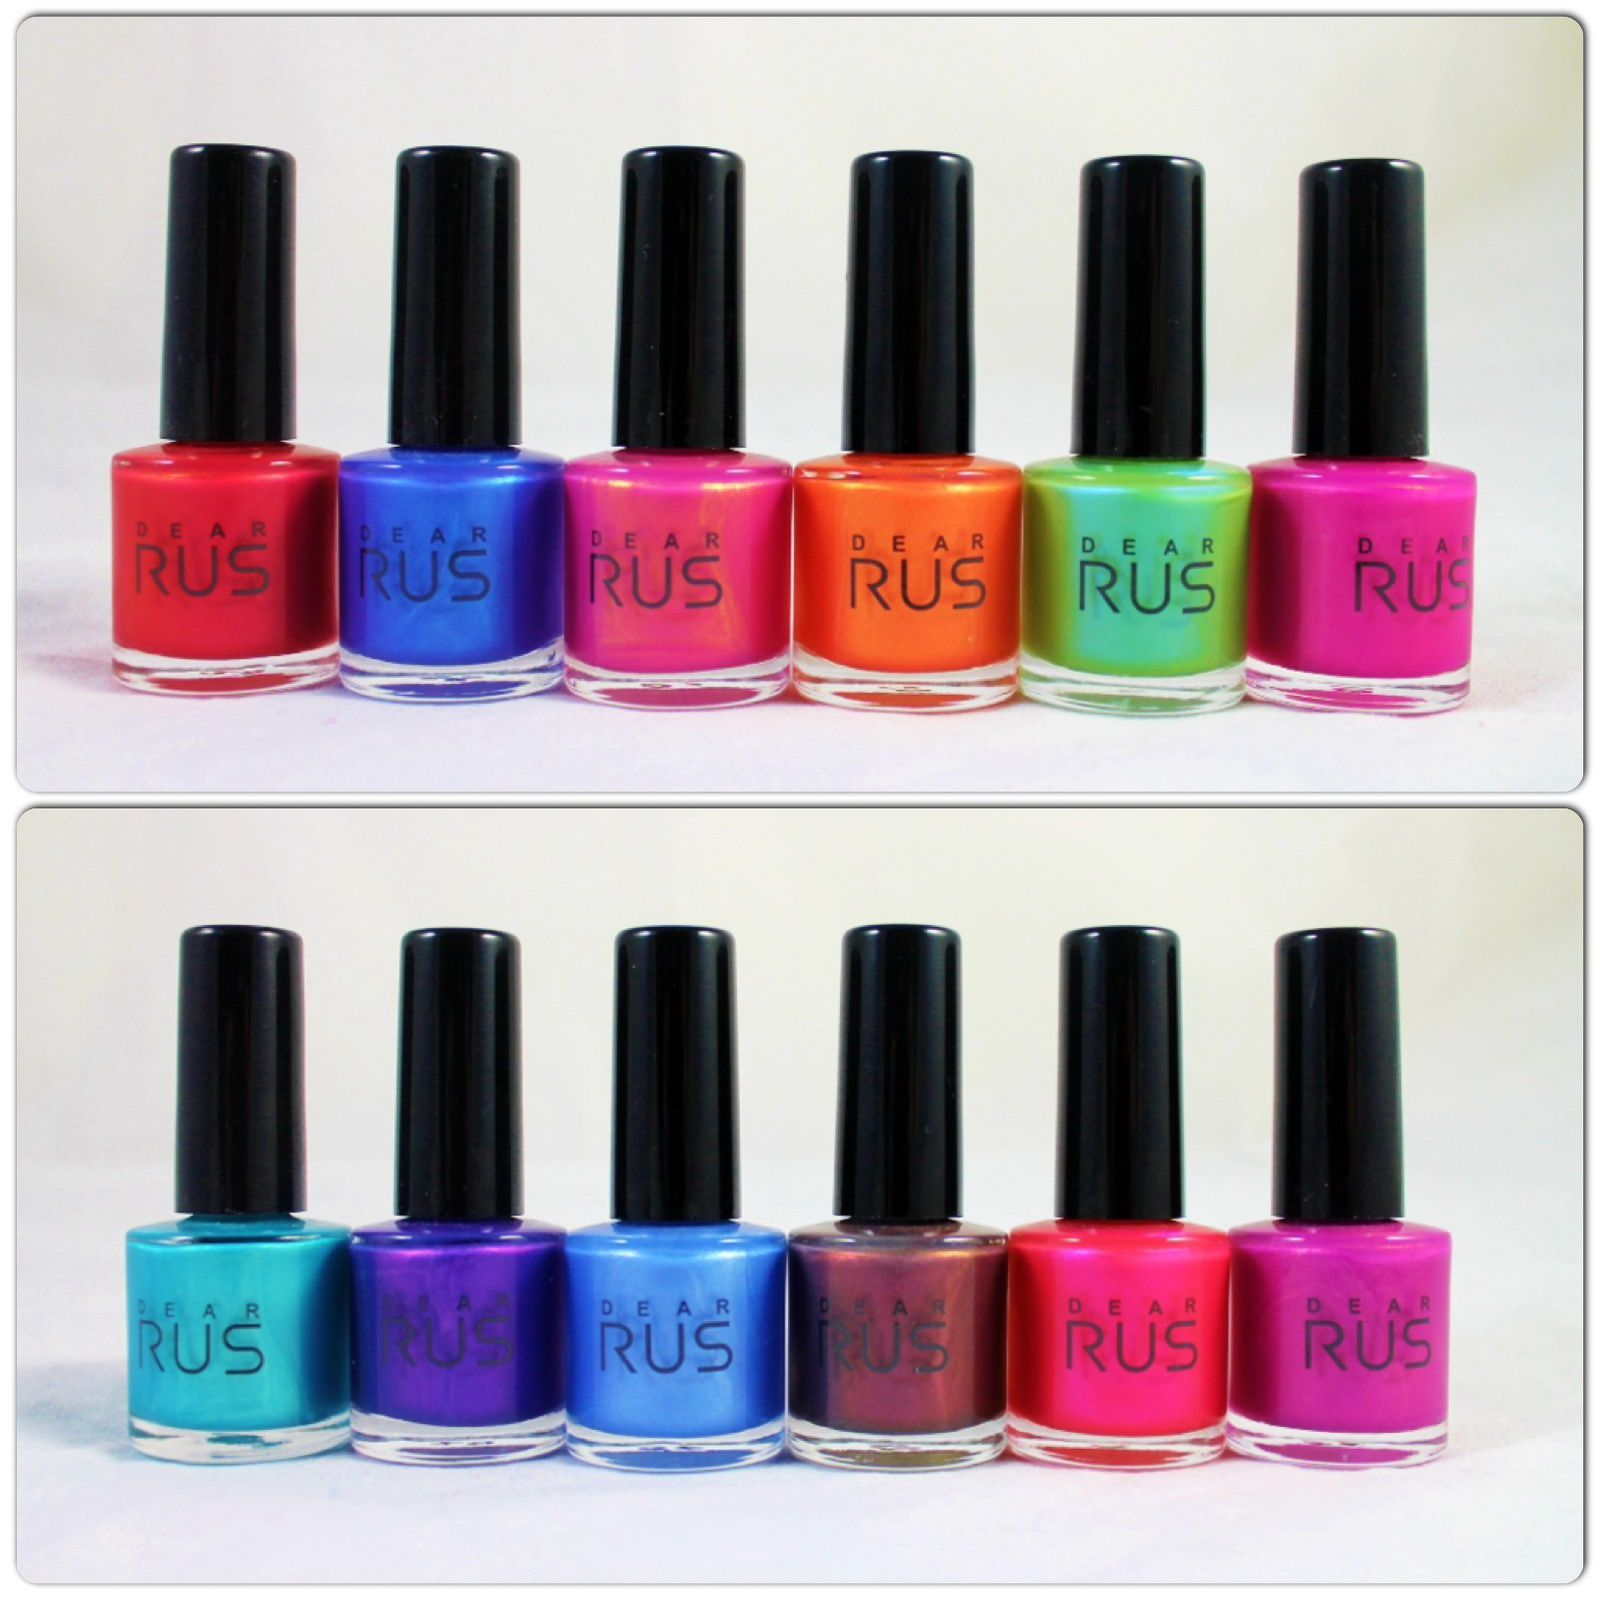 Dear Rus Color Changing Polish (Thermal) 25, 07, 21, 10, 04, 15, 23, 24, 08, 29, 12 &13